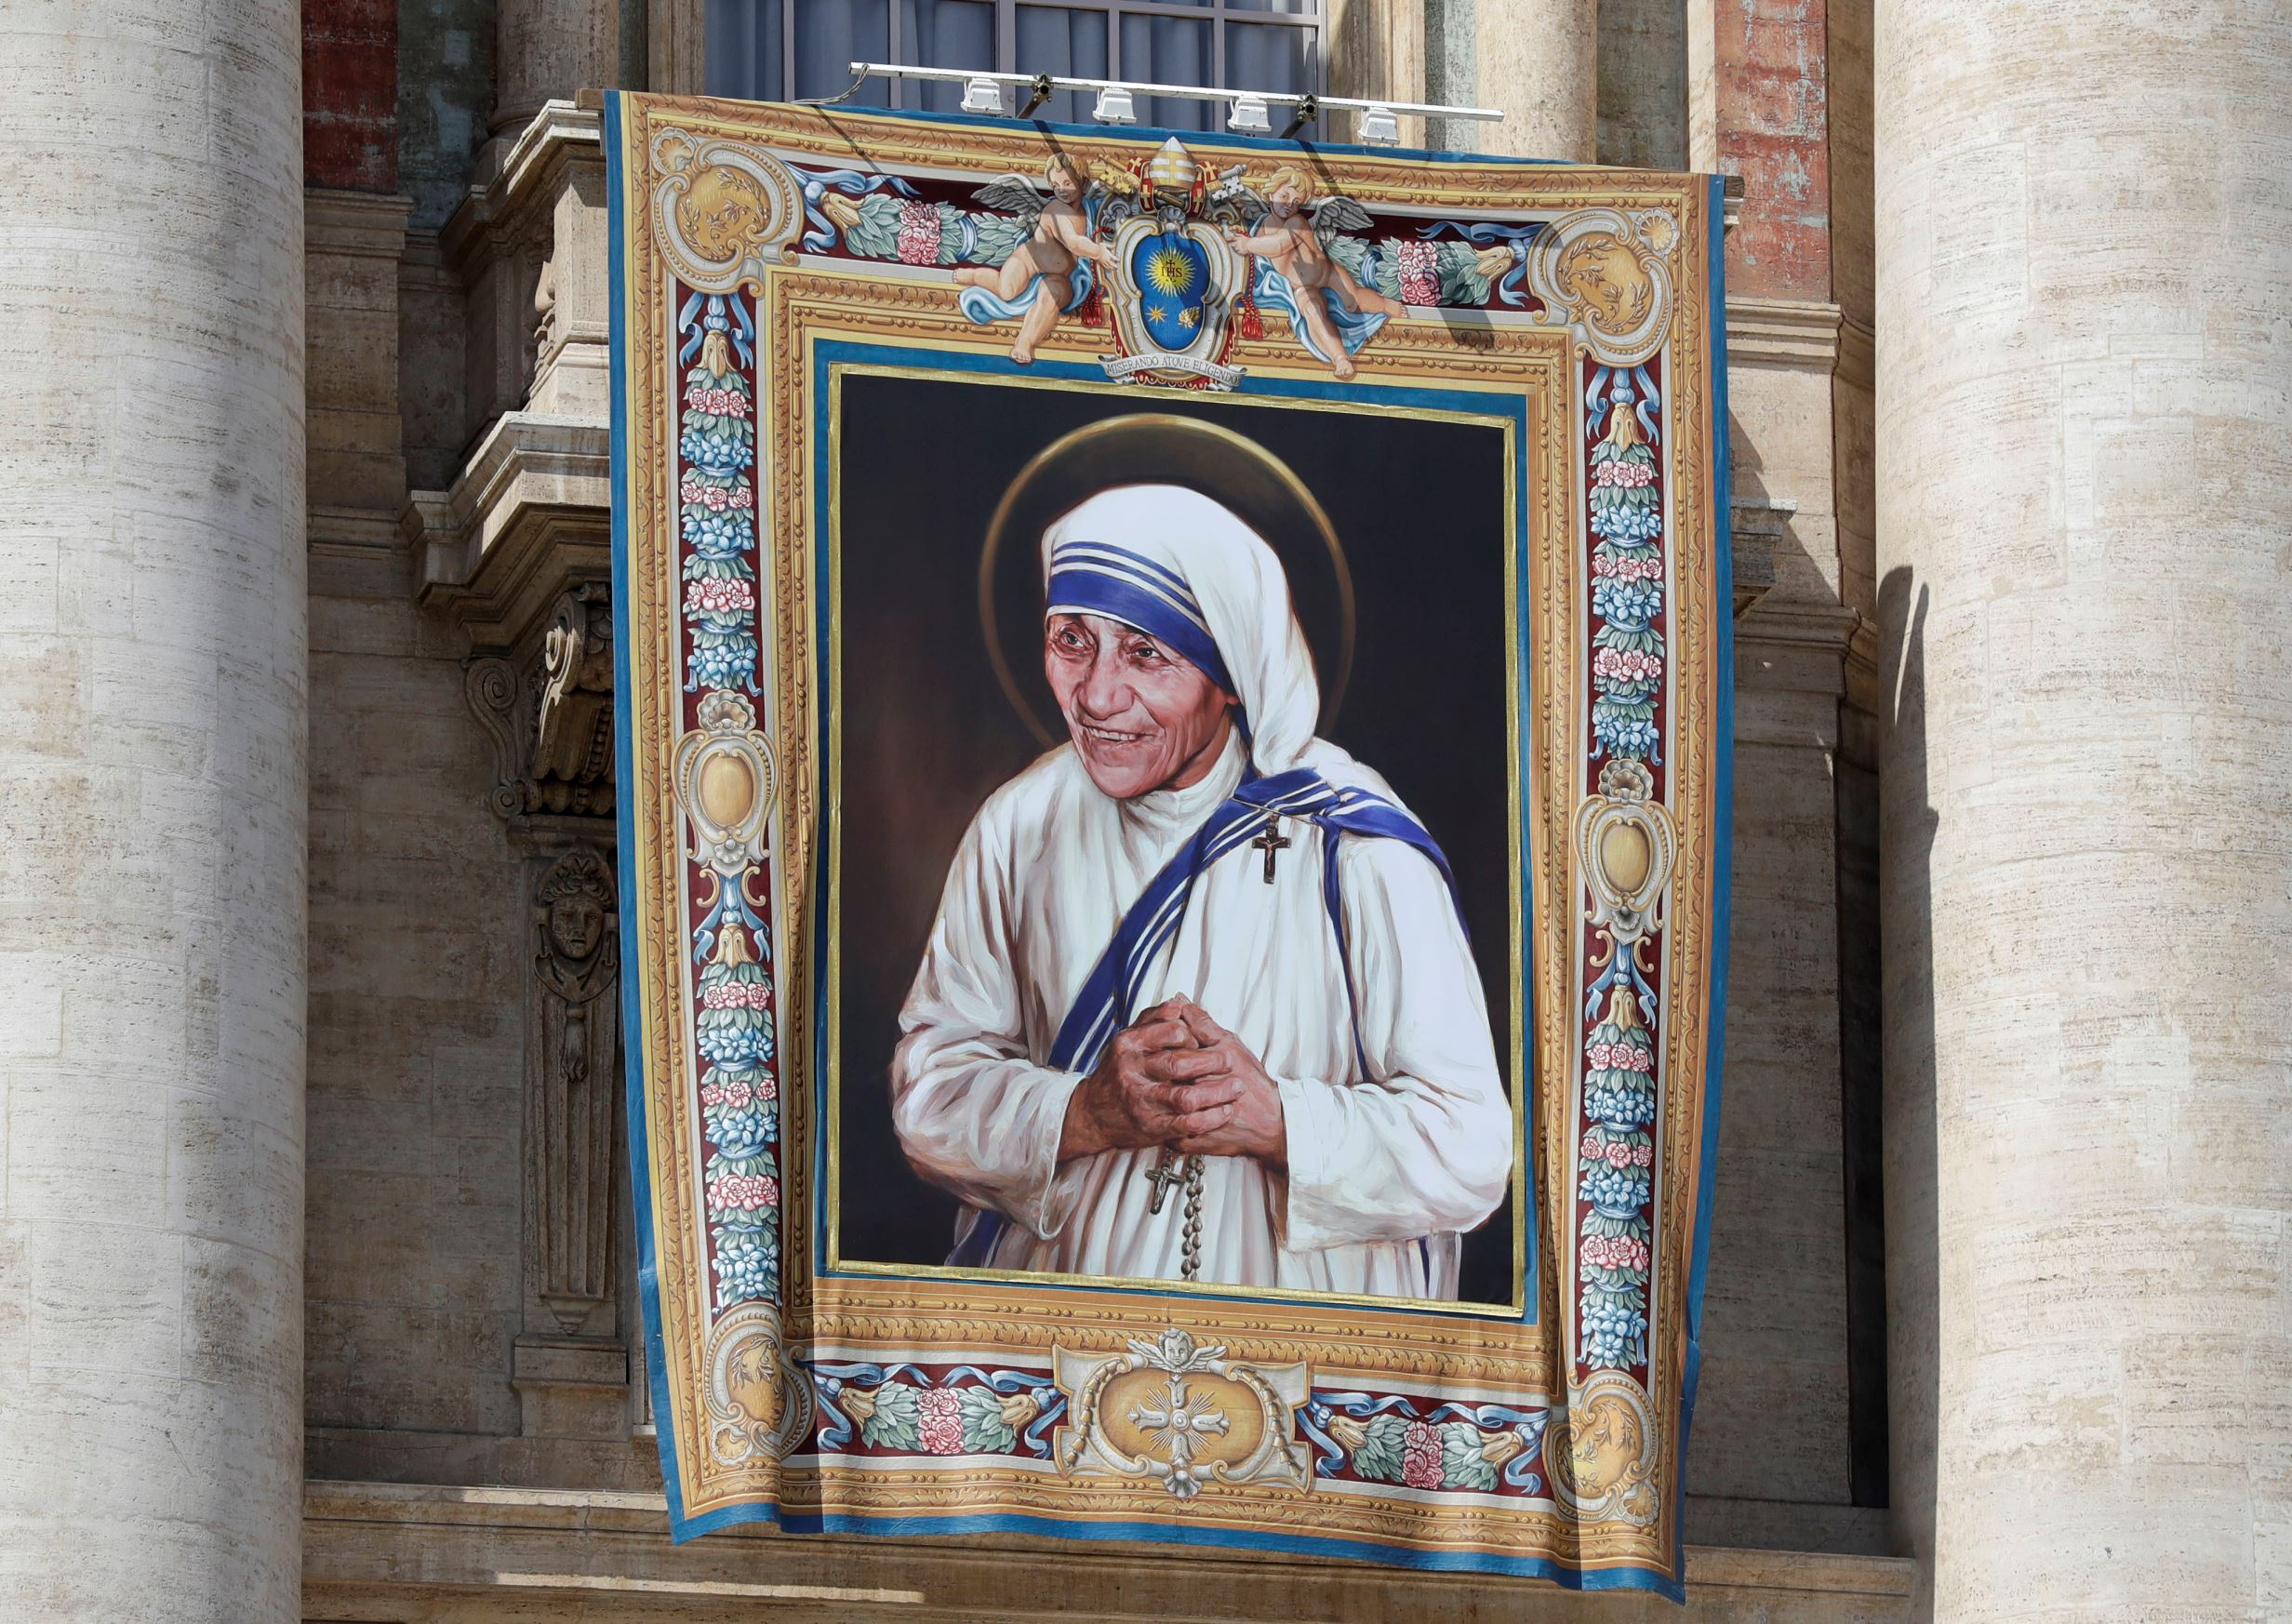 FILE - In this Thursday, Sept. 1, 2016 file photo, a tapestry showing Mother Teresa hangs from the central balcony of St. Peter's Basilica, in St. Peter's Square, at the Vatican.